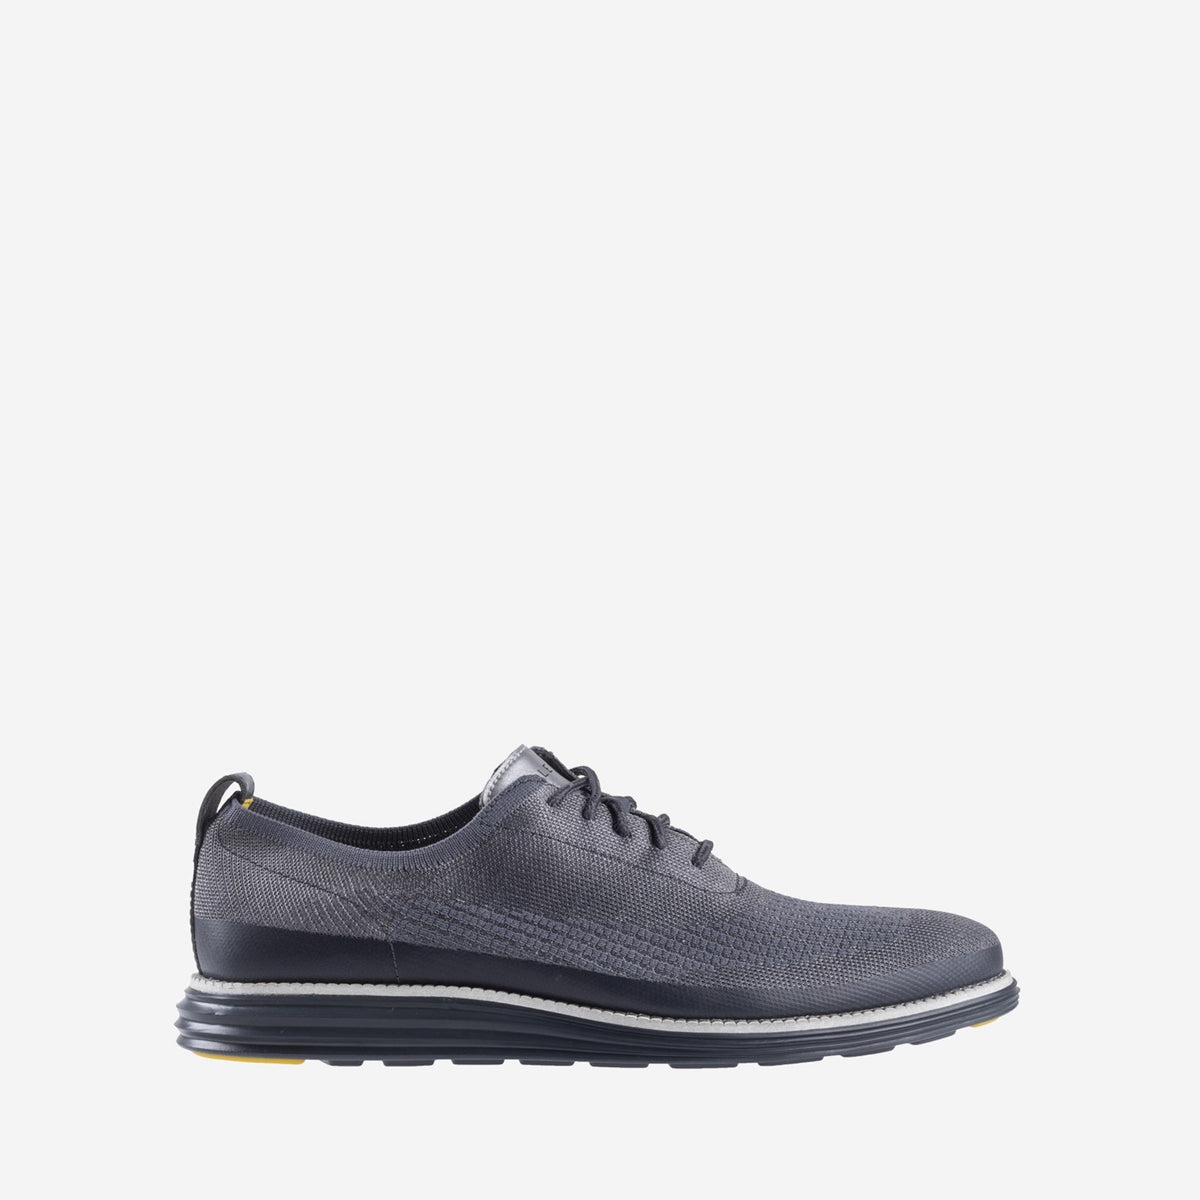 Men's ØriginalGrand Stitchlite Wingtip Oxford Grey